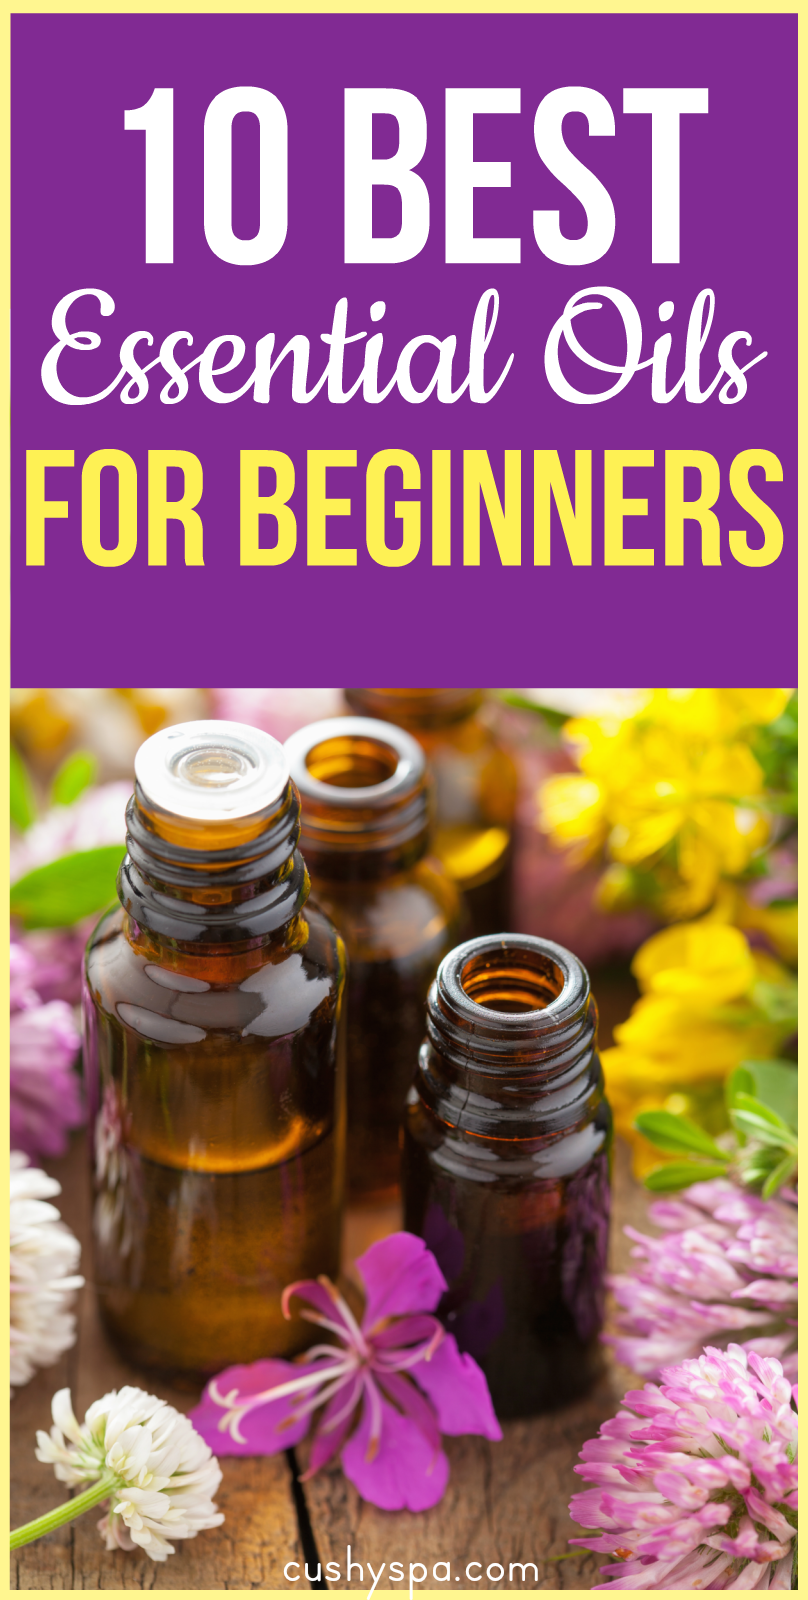 Interested in aromatherapy? However, have no knowledge about it? Here are 10 best essential oils for beginners to start your aromatherapy journey! (aromatherapy for beginners)